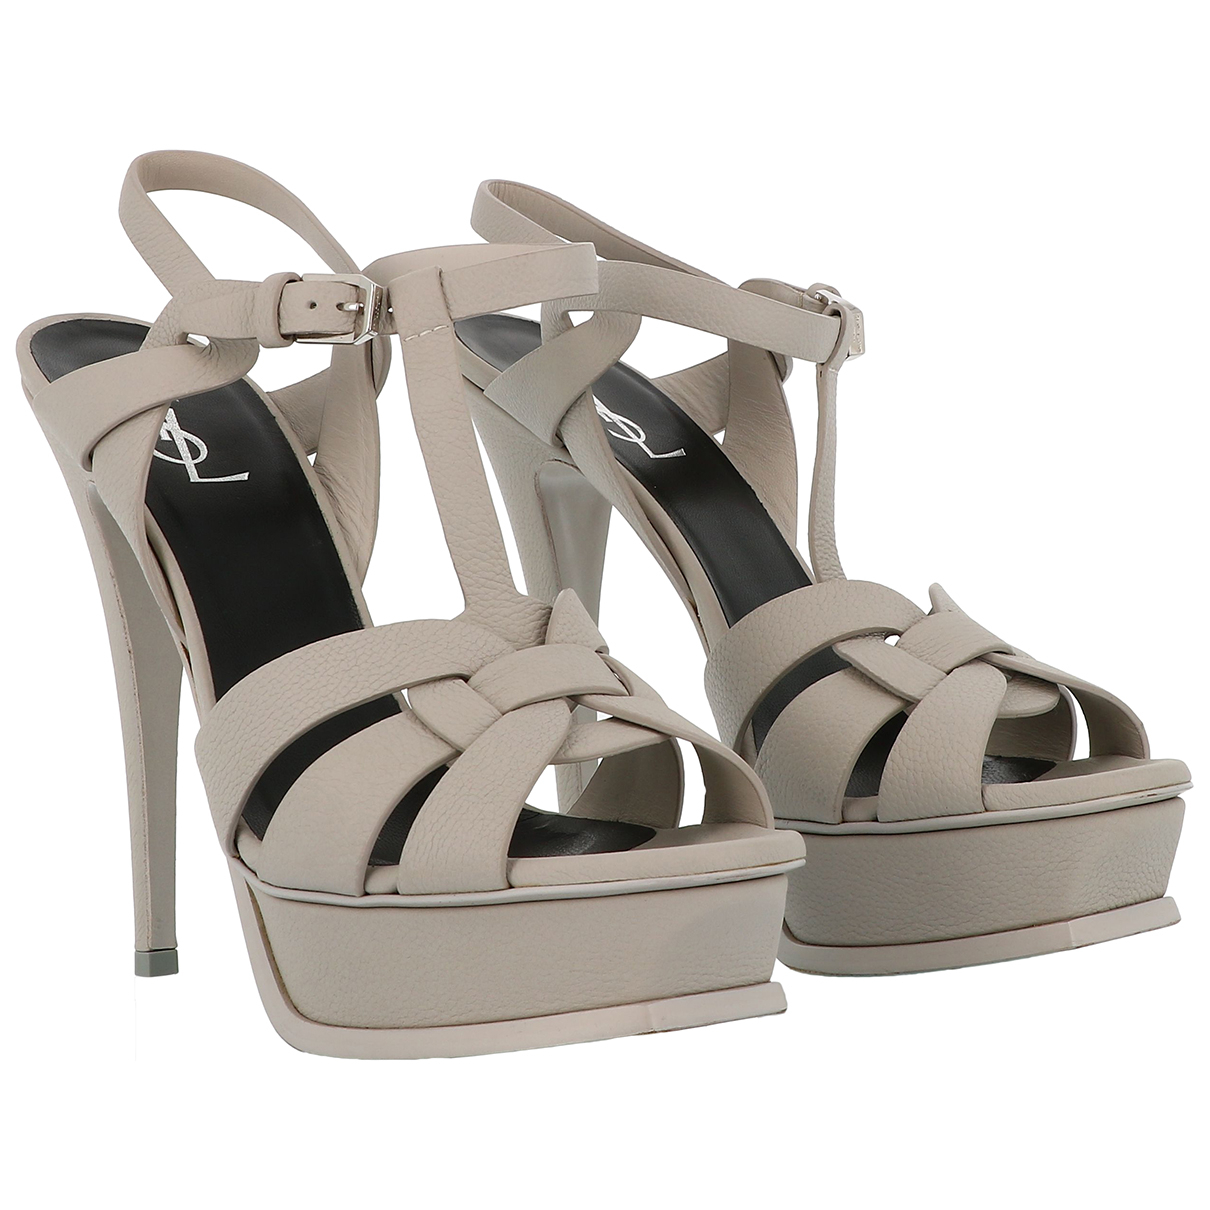 Saint Laurent Tribute Sandalen in  Grau Leder